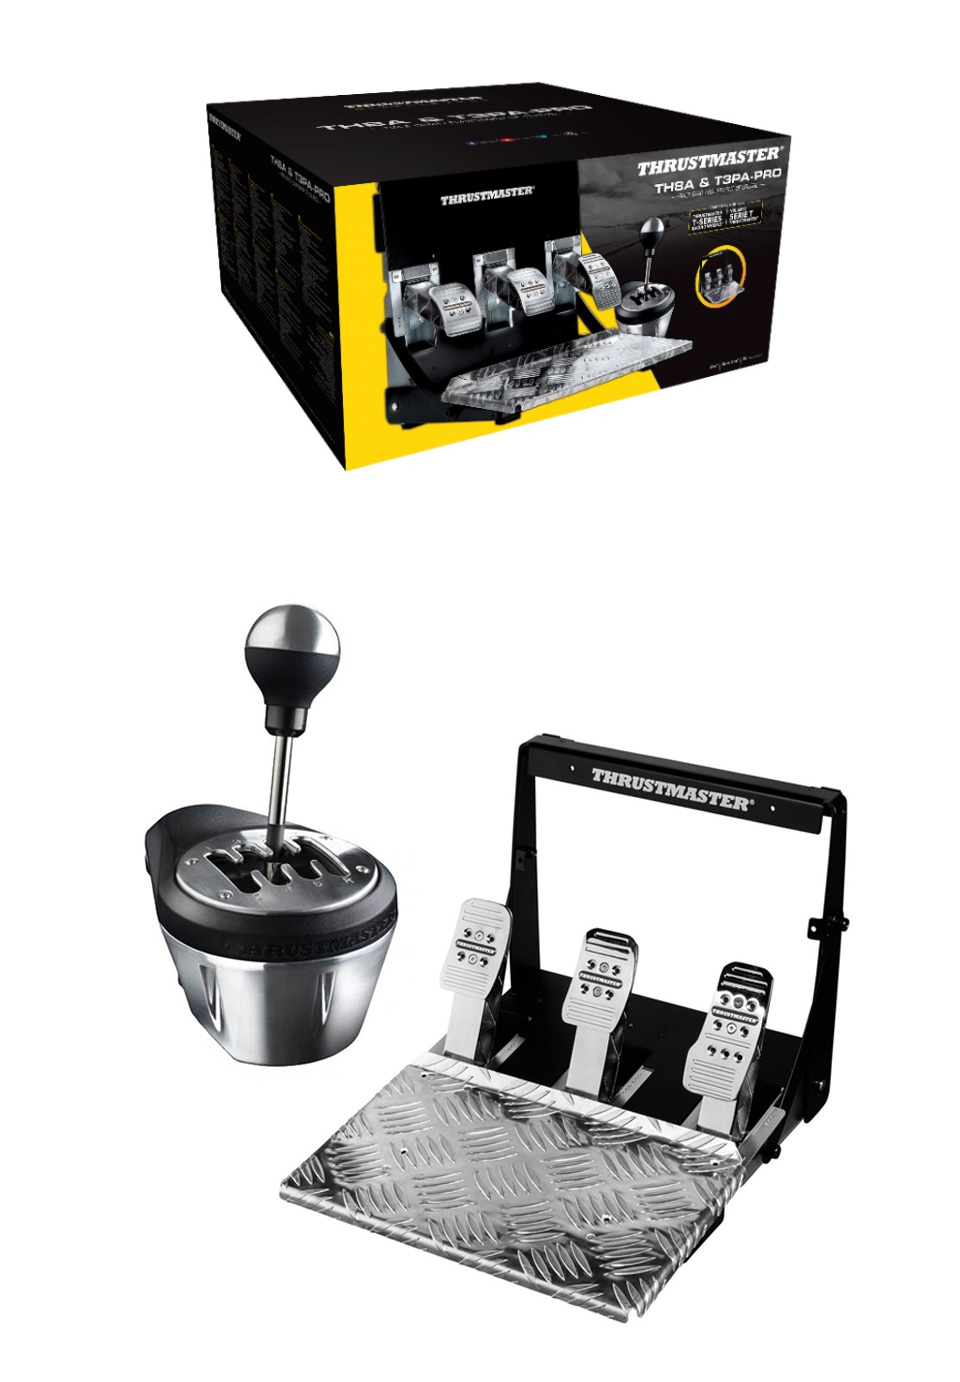 Thrustmaster TH8A/T3PA Pro Race Gear Bundle product